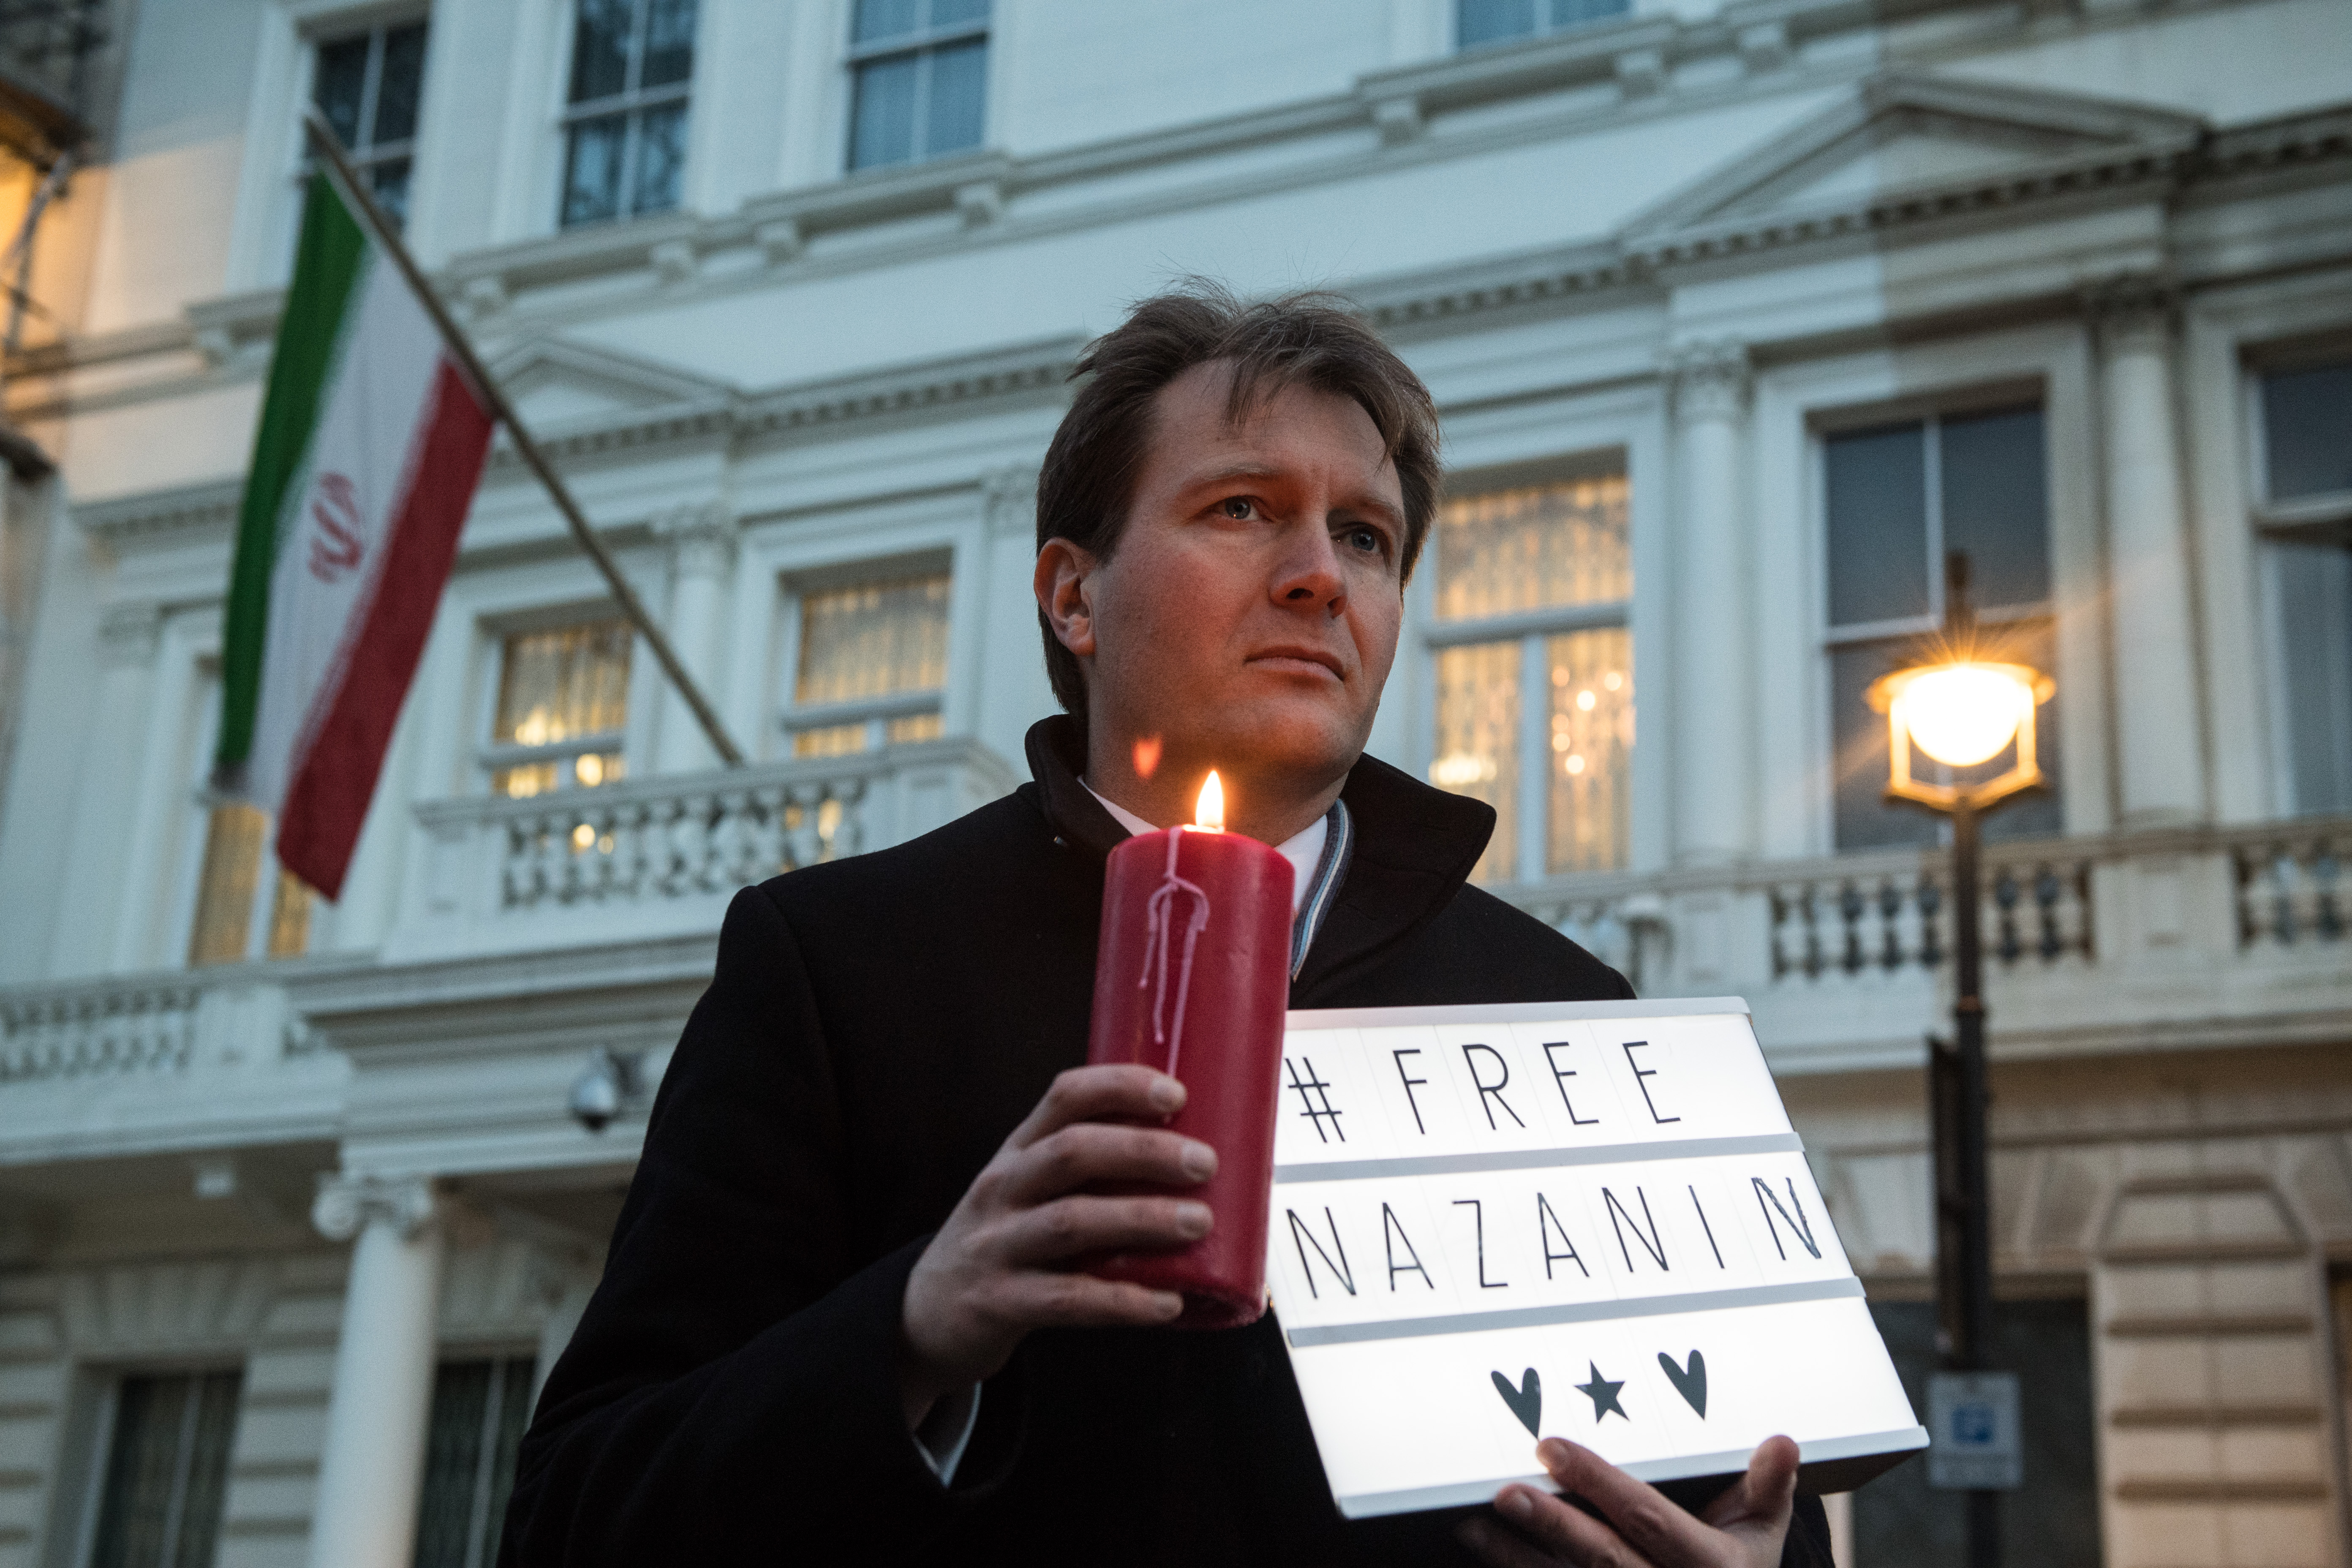 Richard Ratcliffe, husband of Nazanin Zaghari-Ratcliffe, holds a '#Free Nazanin' sign and candle during a vigil in 2017 (Photo: Chris J Ratcliffe/Getty Images)